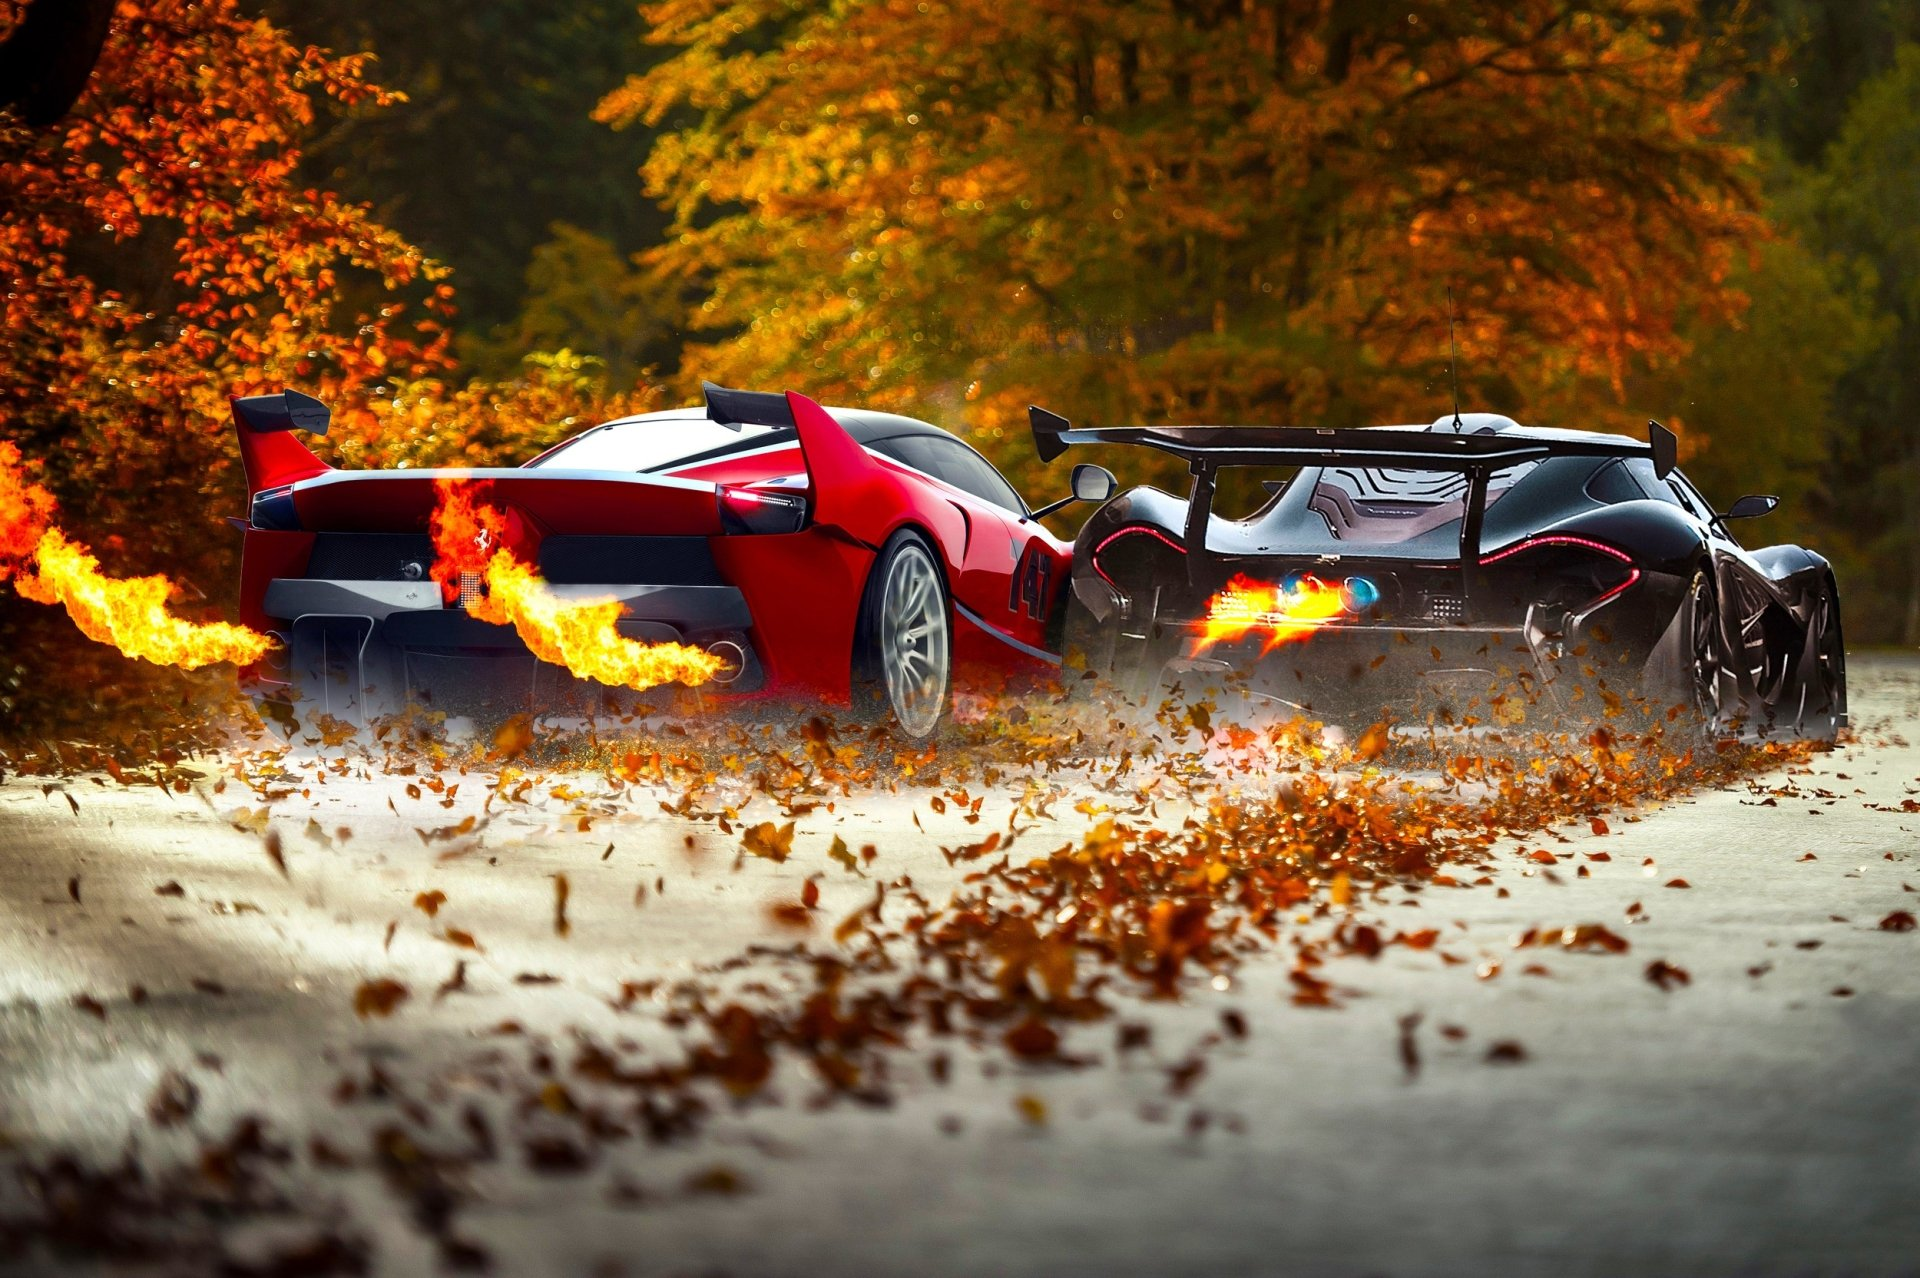 Vehicles - Car  Ferrari FXX Ferrari McLaren McLaren P1 Supercar Black Car Red Car Vehicle Wallpaper